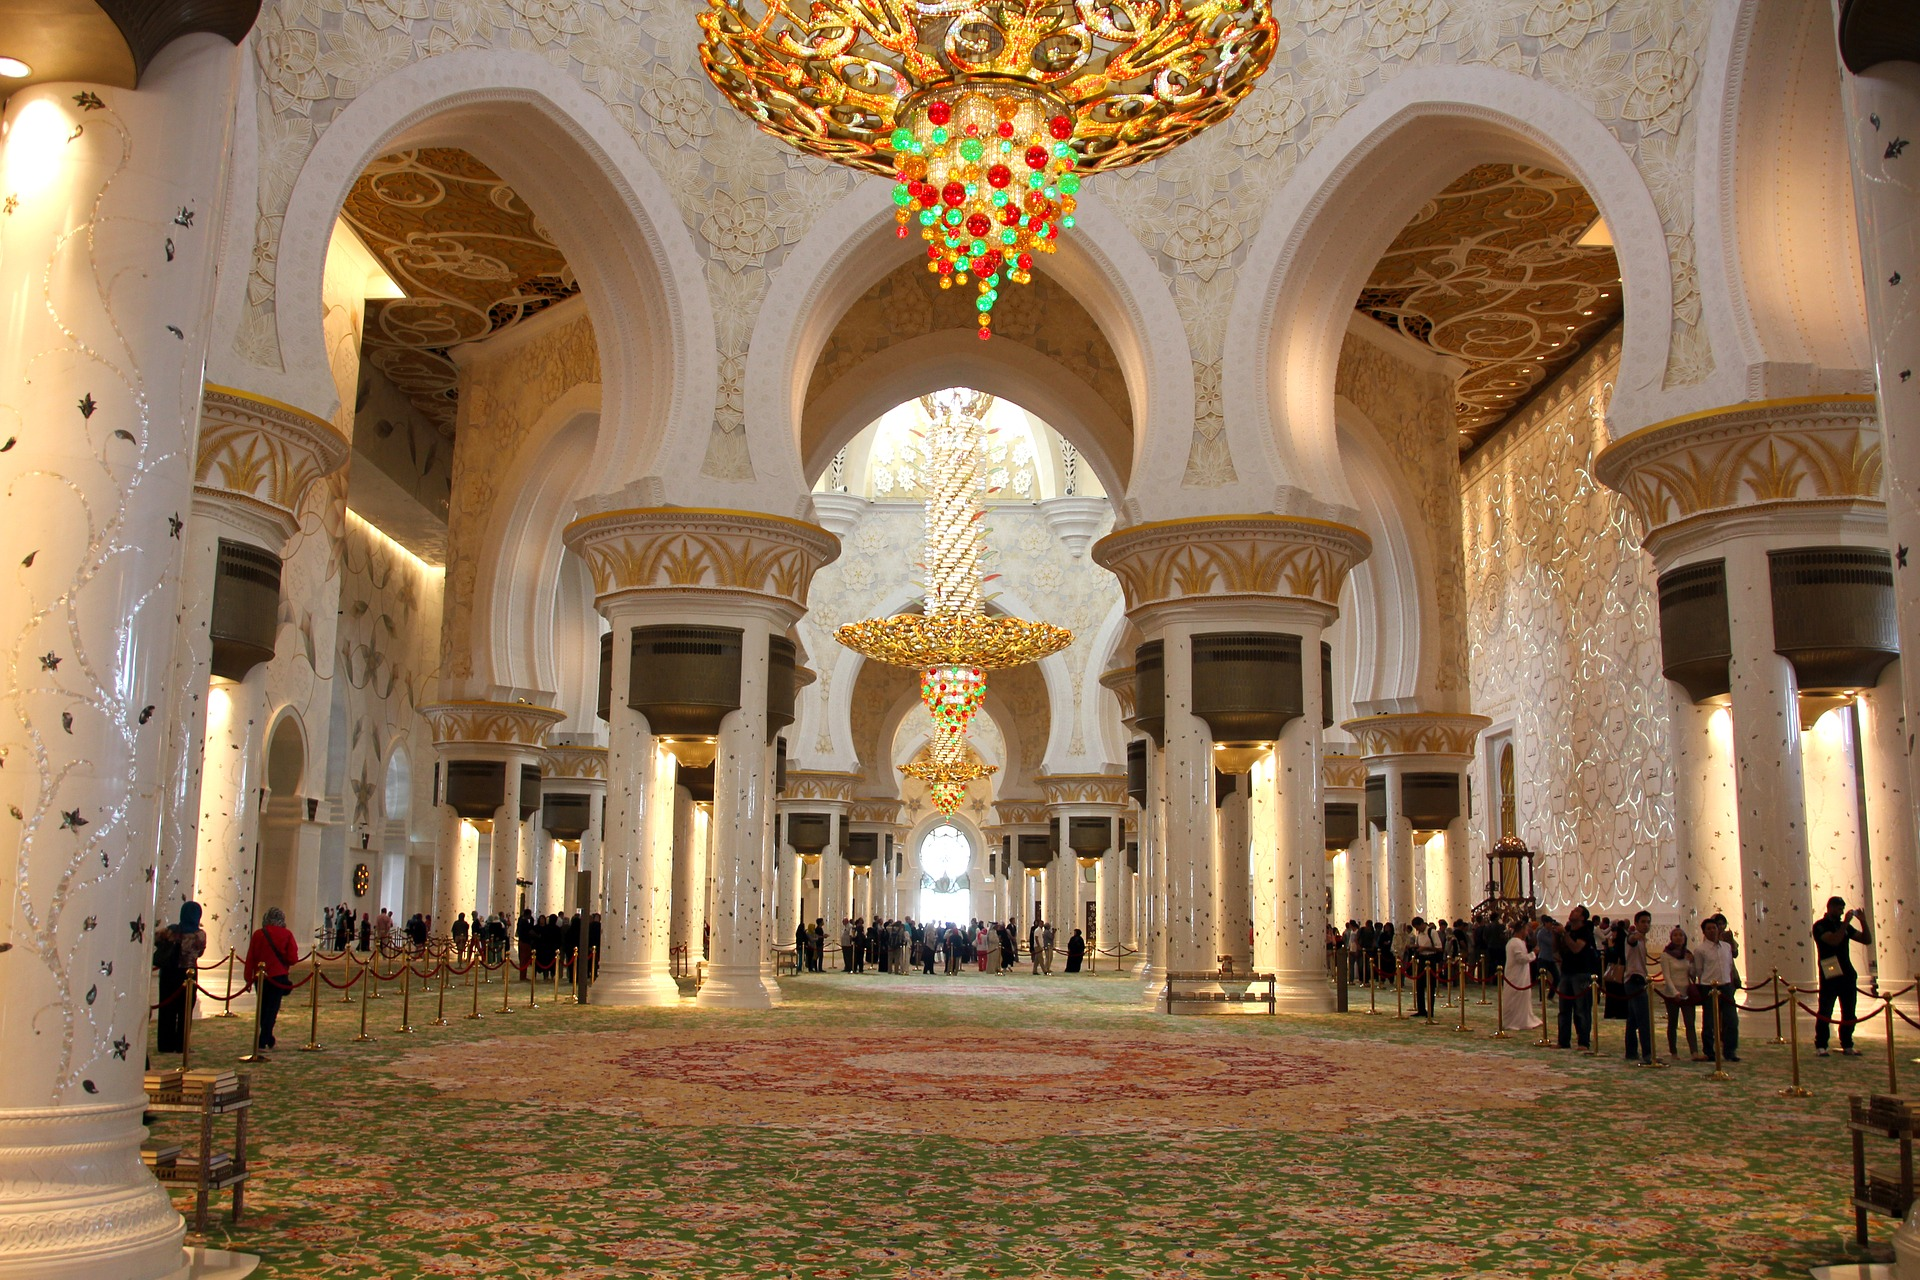 Inside the Sheikh Zayed Grand Mosque, Abu Dhabi, UAE